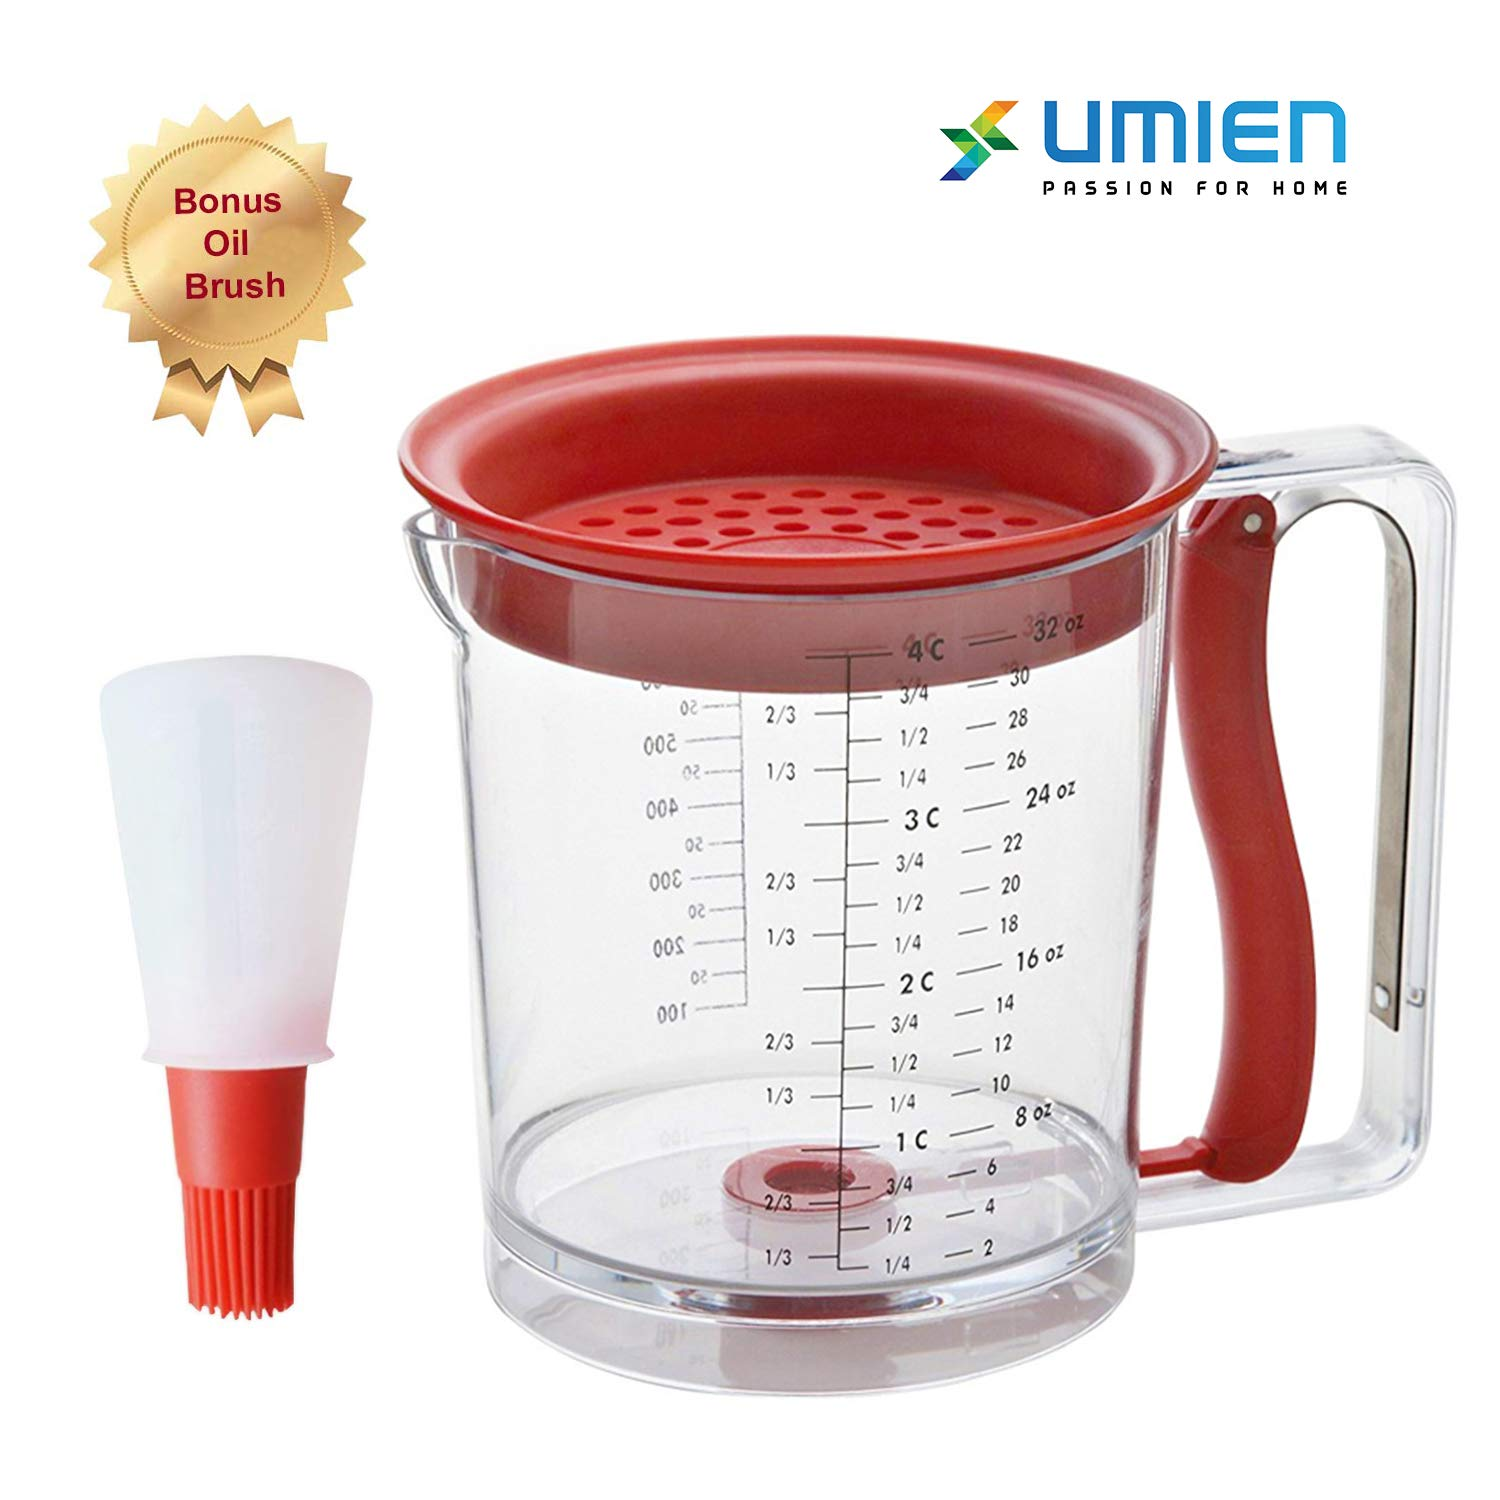 Umien Fat Separator And Pancake Cupcake Batter Dispenser - Great For Gravy Grease Oil Separator with Bottom Release Muffins Creeps Cakes & Waffles 4 Cup Capacity - Extra Bonus Oil Brush Included by Umien